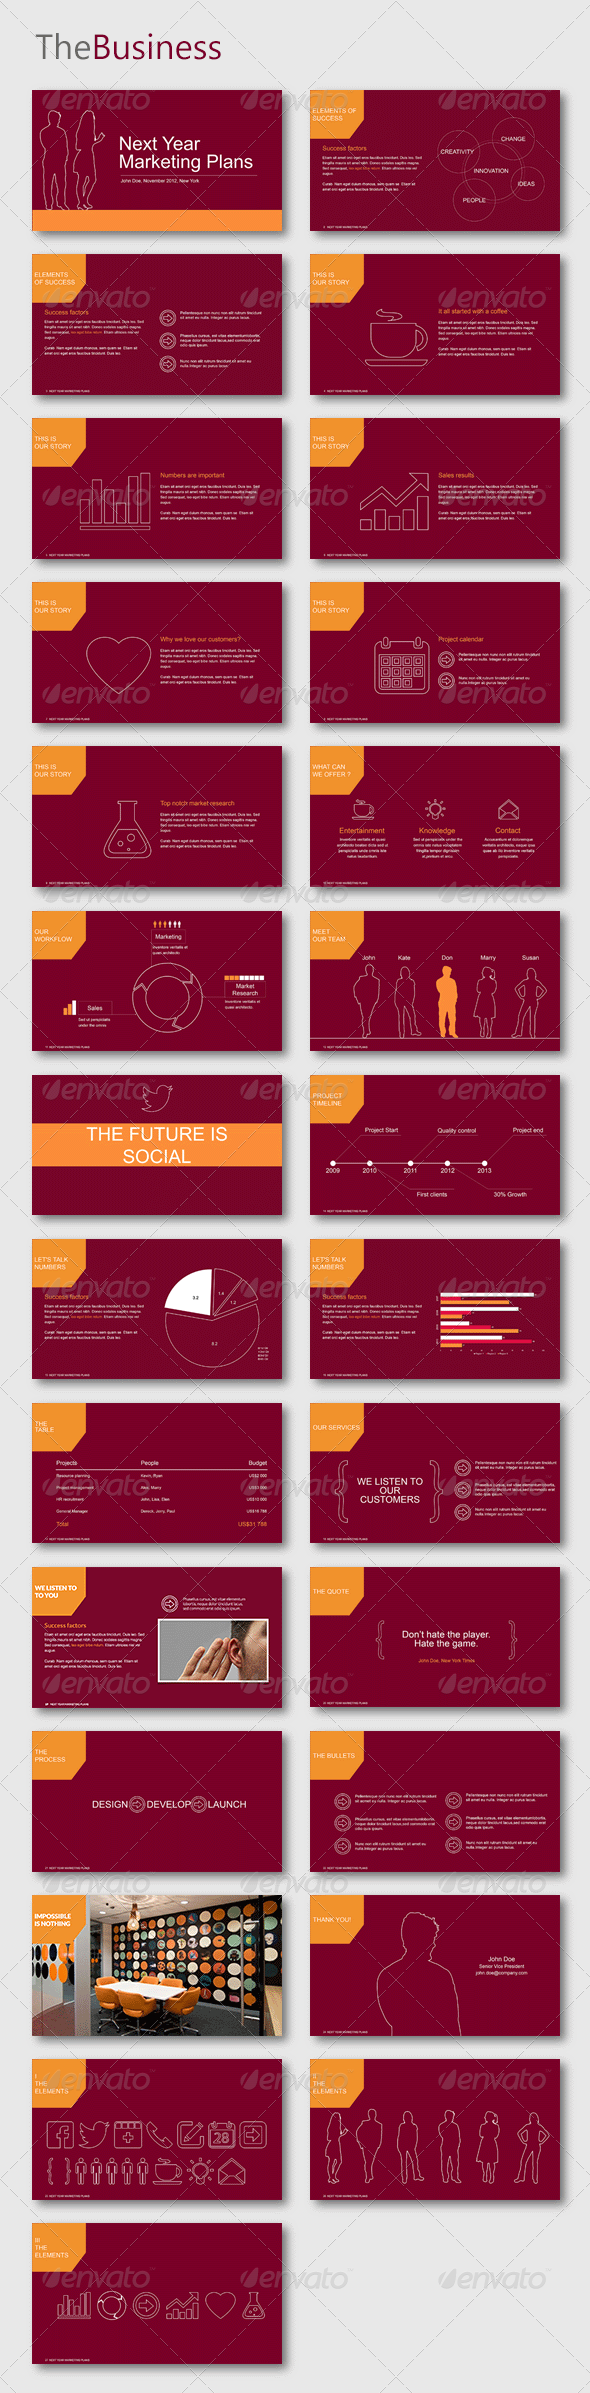 TheBusiness Powerpoint Template - Business PowerPoint Templates